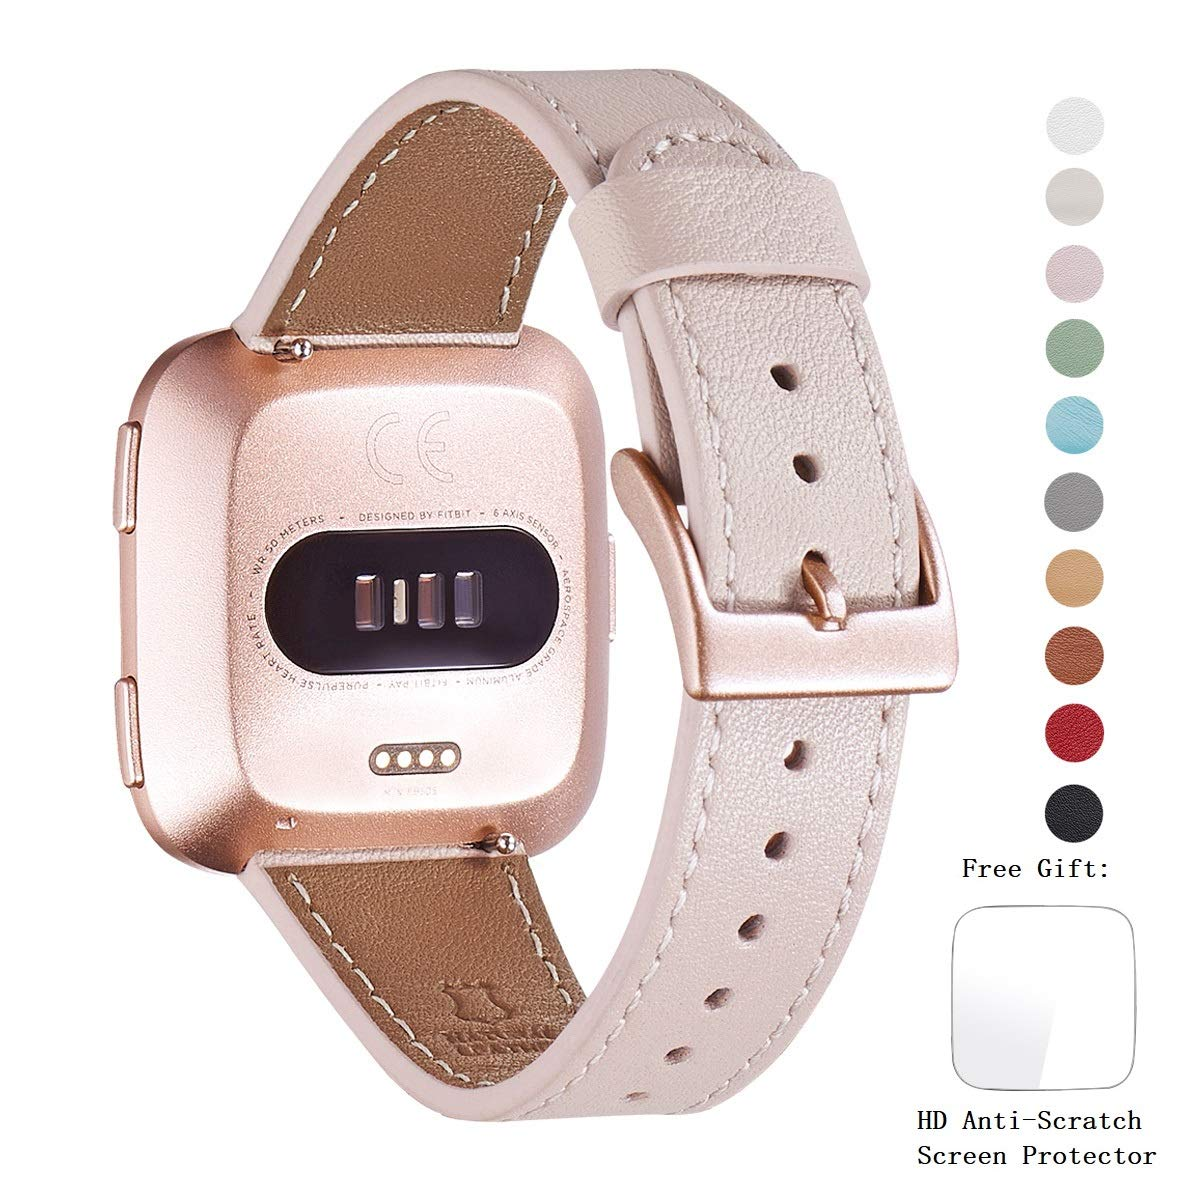 WFEAGL for Fitbit Versa Bands, Top Grain Leather Band Replacement Strap for Fitbit Versa/Versa 2 /Versa Lite/Versa SE Fitness Smart Watch (Pink Sand Band+ Rosegold Buckle) by WFEAGL